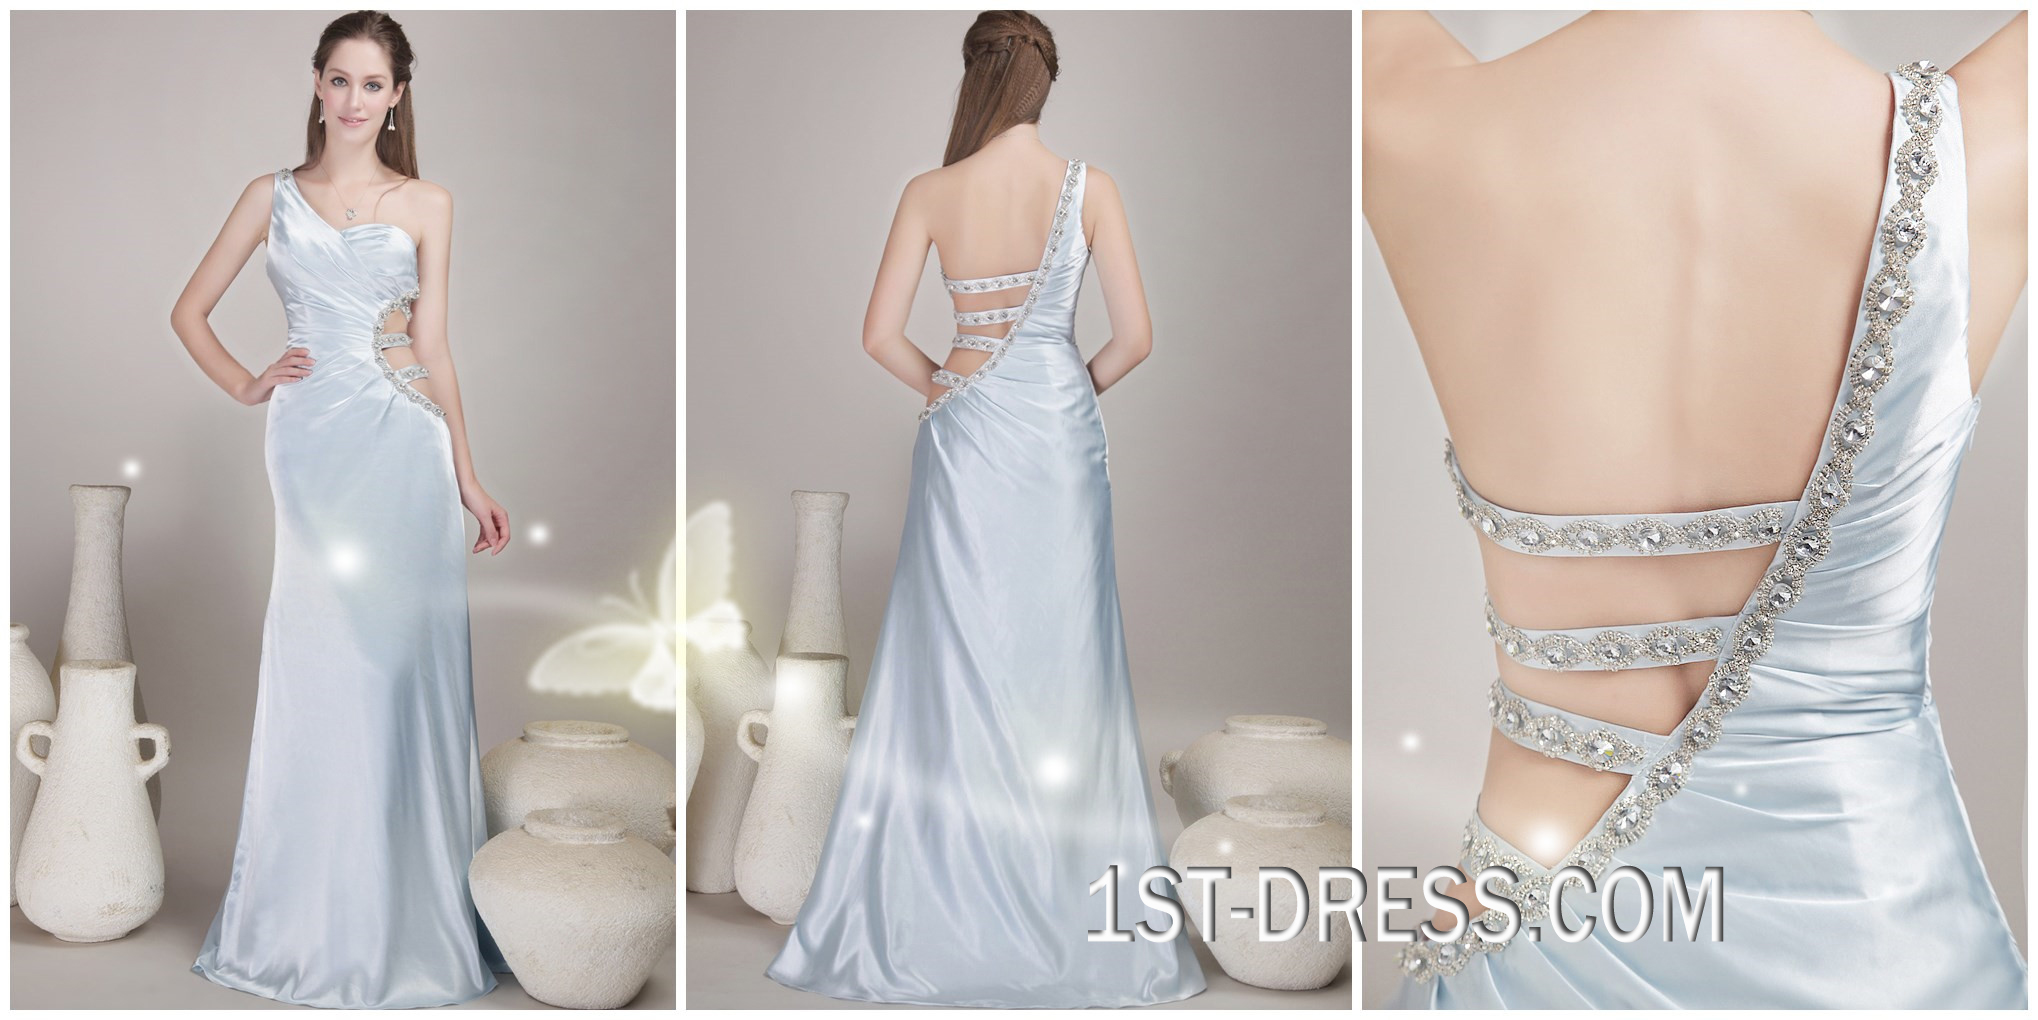 St dress discounts wedding dresses and prom dresses up to